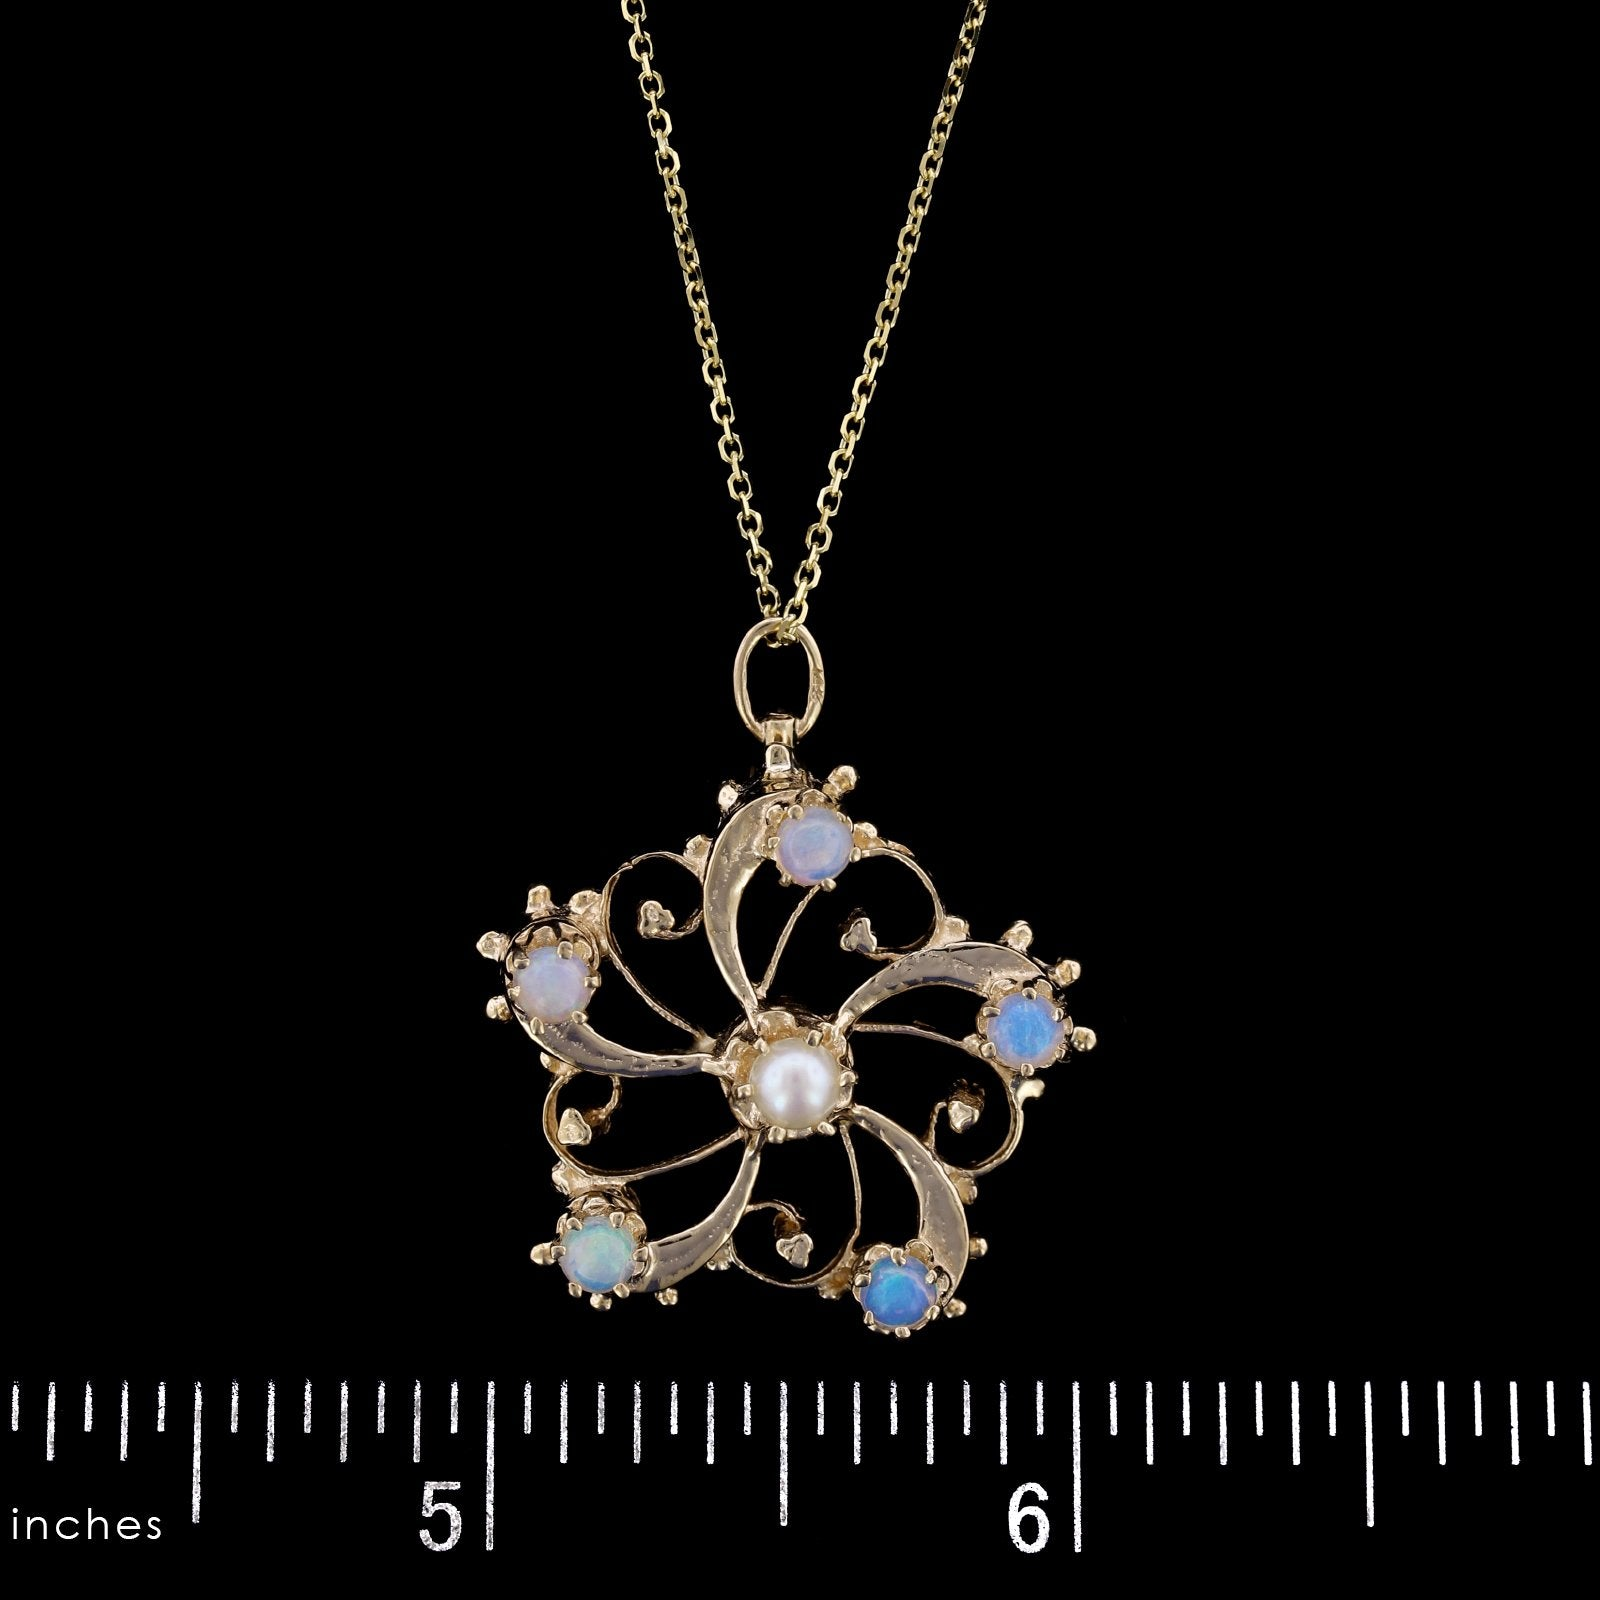 14K Yellow Gold Estate Opal and Cultured Pearl Pendant